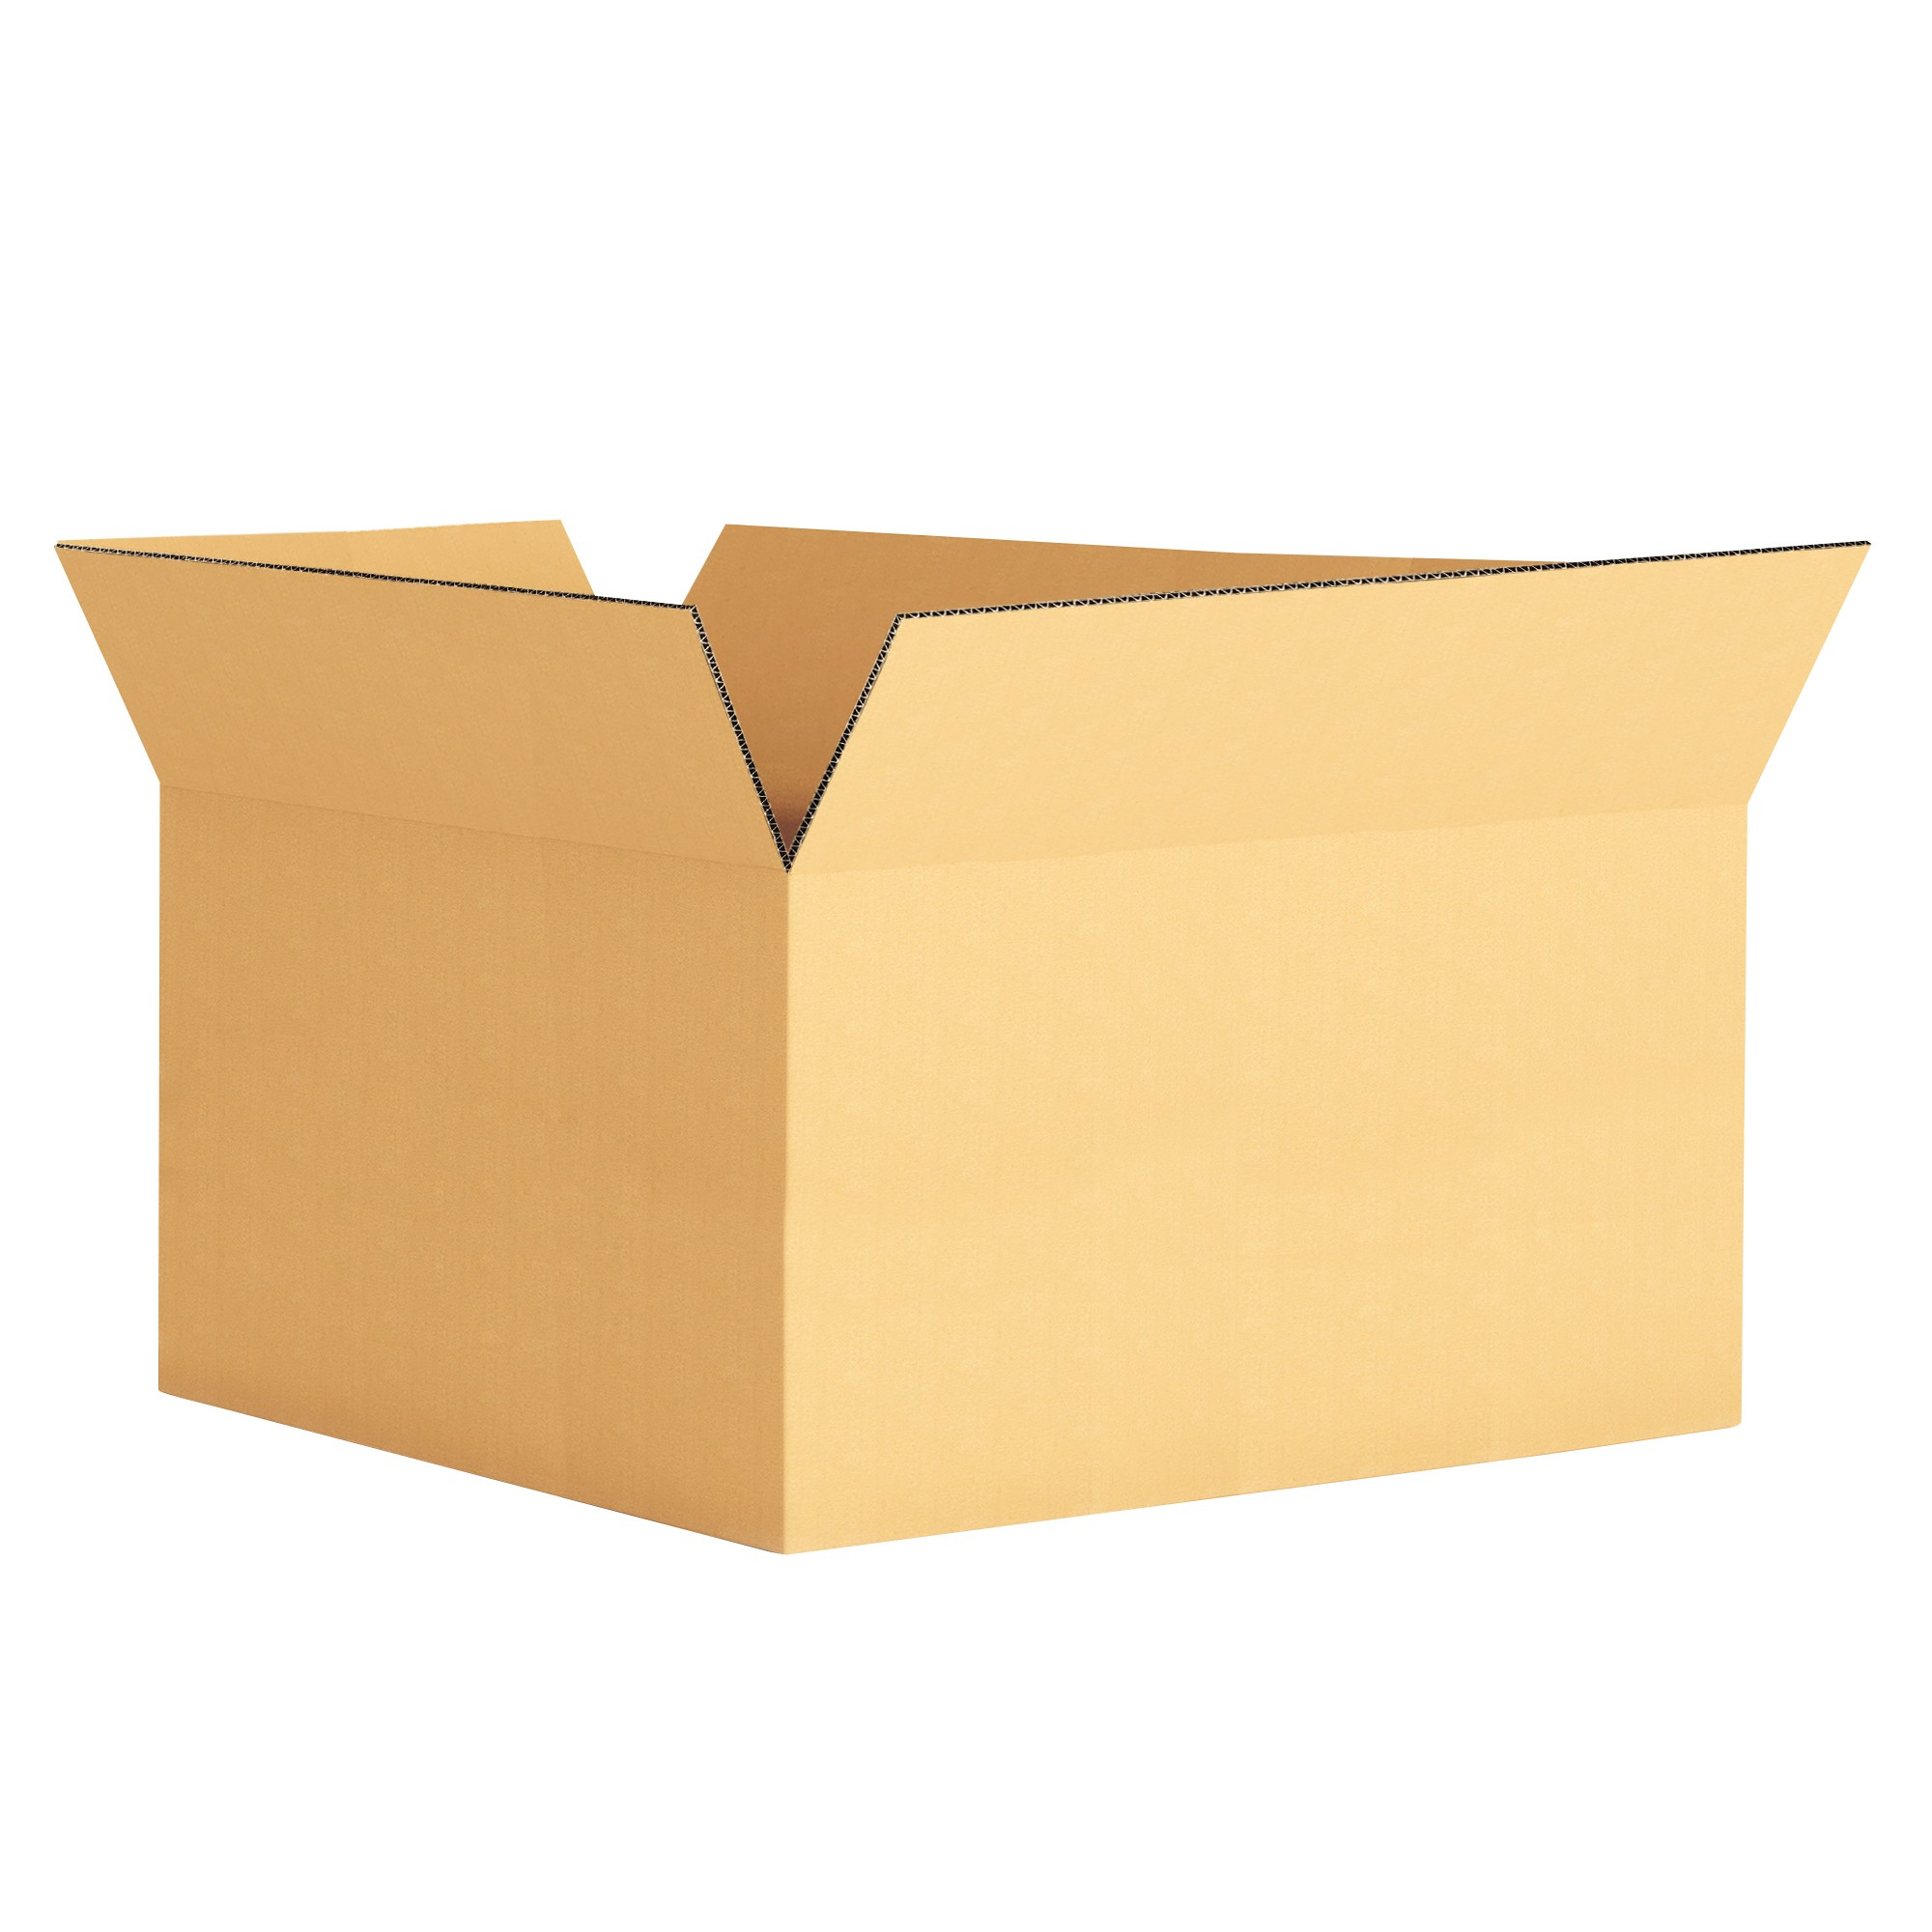 """TOTALPACK® 13 1/2 x 13 1/2 x 7 1/2"""" Single Wall Corrugated """"1-4 Gallons"""" Boxes 25 Units"""